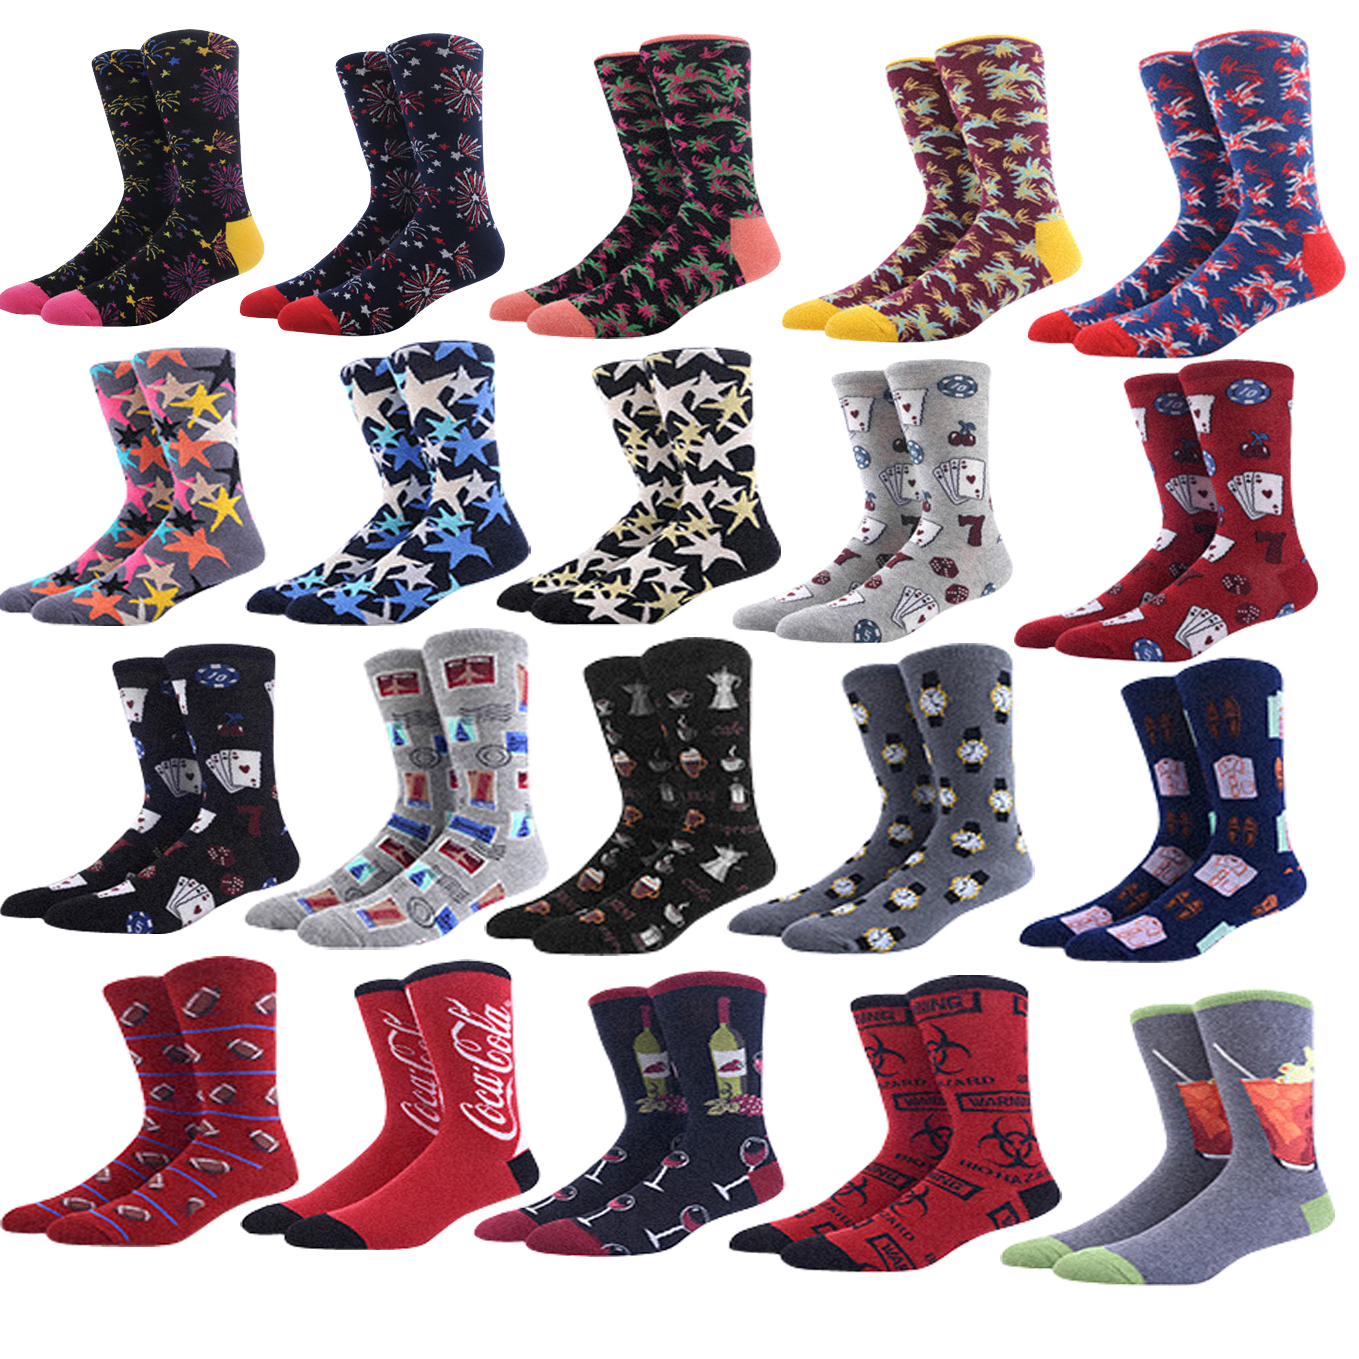 Mens Happy   Socks   Fireworks Lun wind graffiti poker Creative pattern   Sock   combed cotton funny   Socks